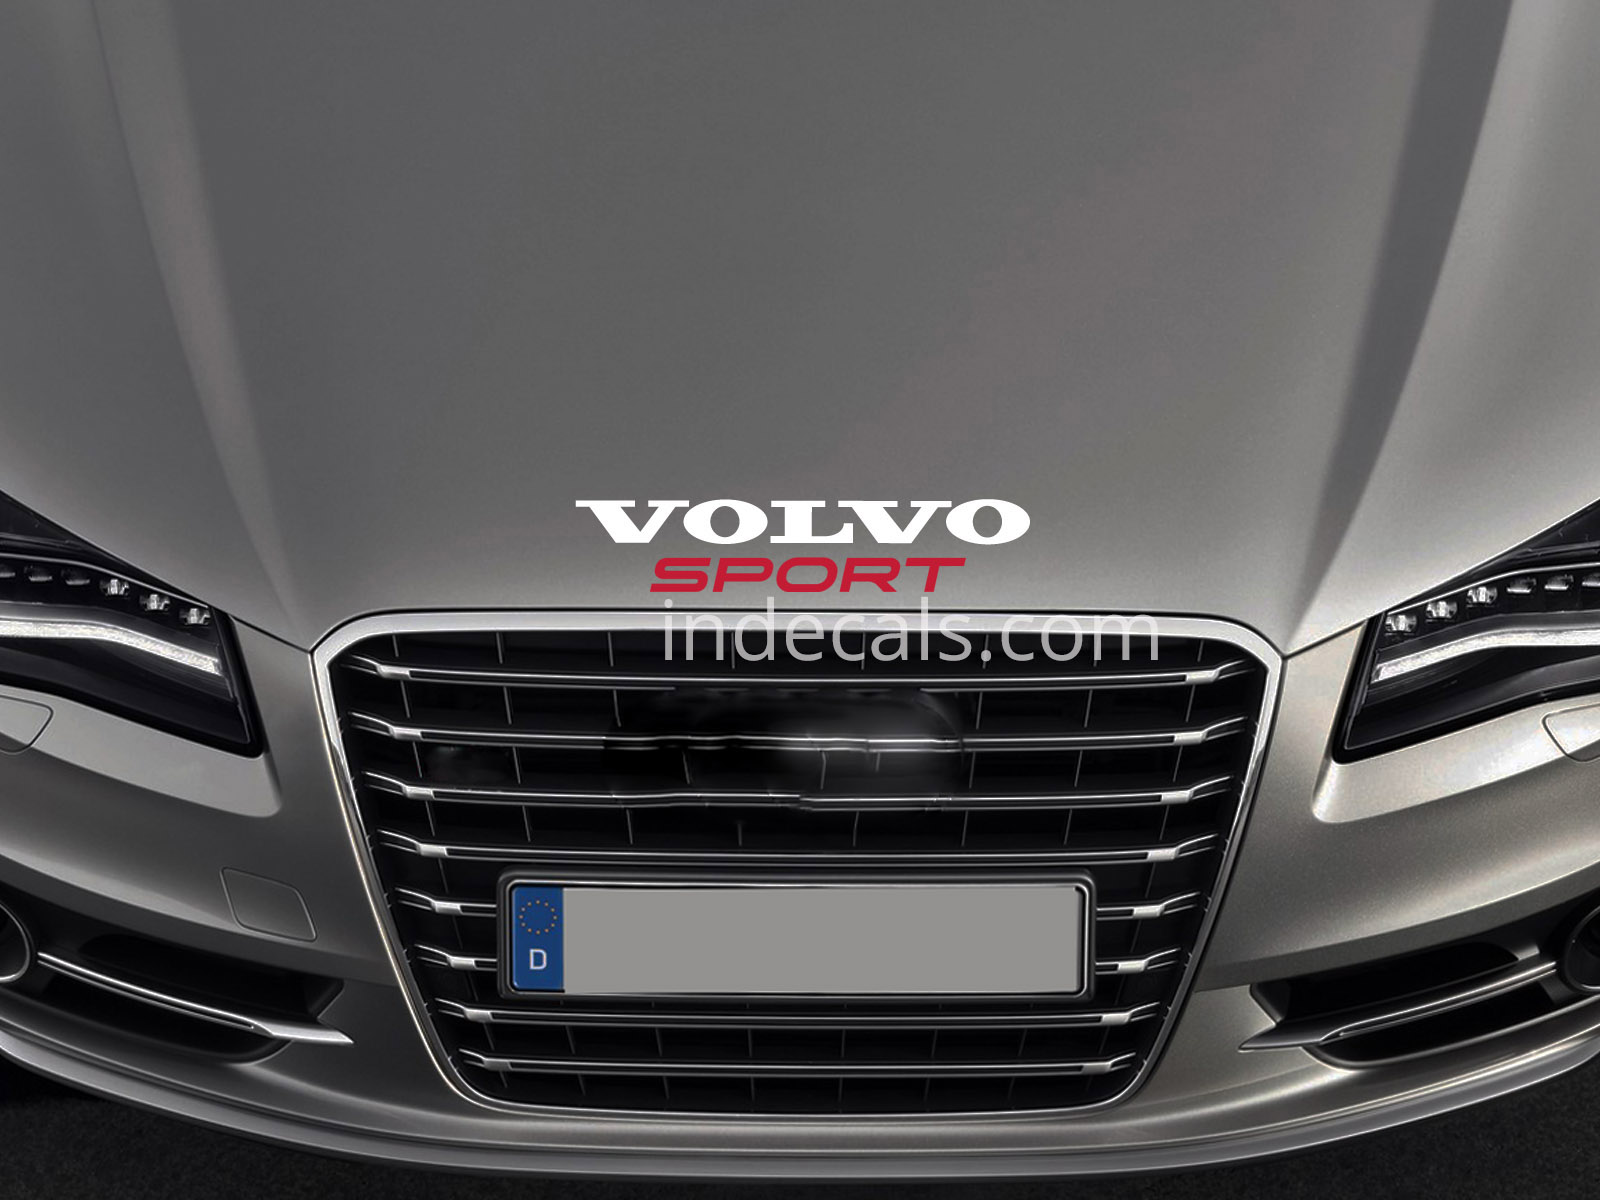 1 x Volvo Sport Sticker for Bonnet - White & Red